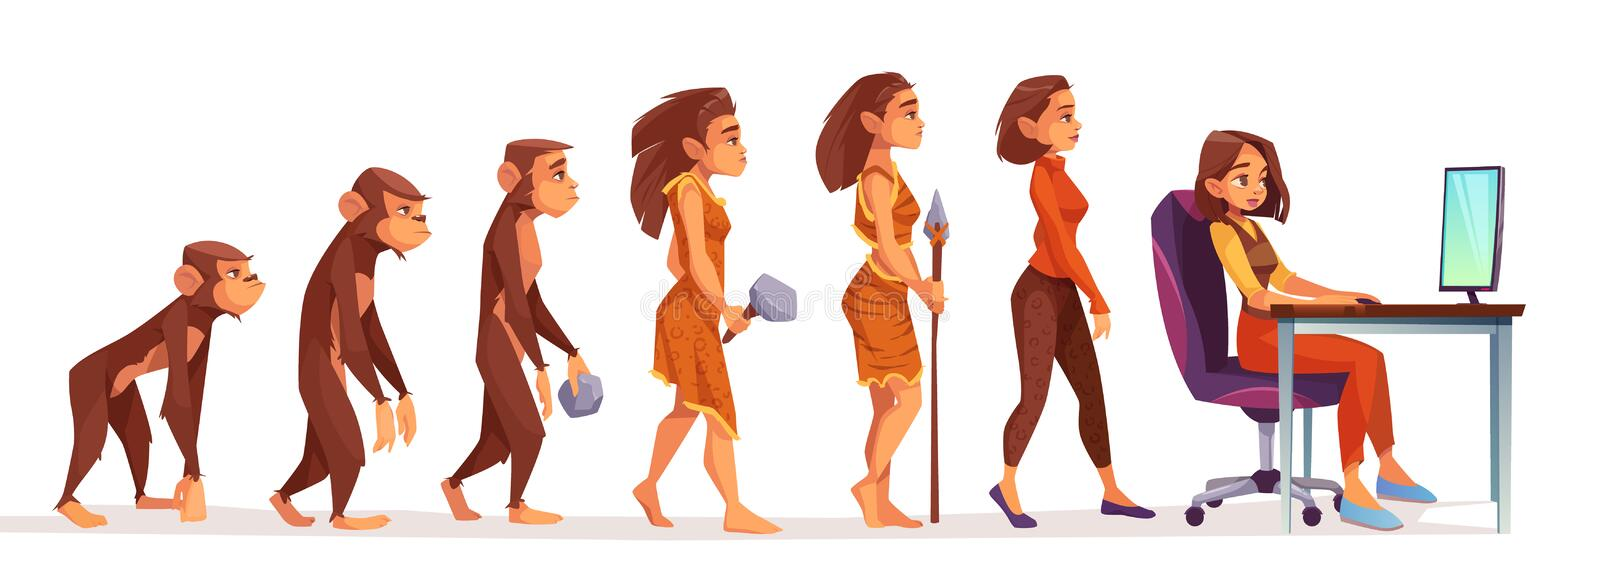 Human evolution from monkey to woman freelancer. Human evolution from monkey to freelancer woman, time line Female character evolve steps from ape to uprights vector illustration